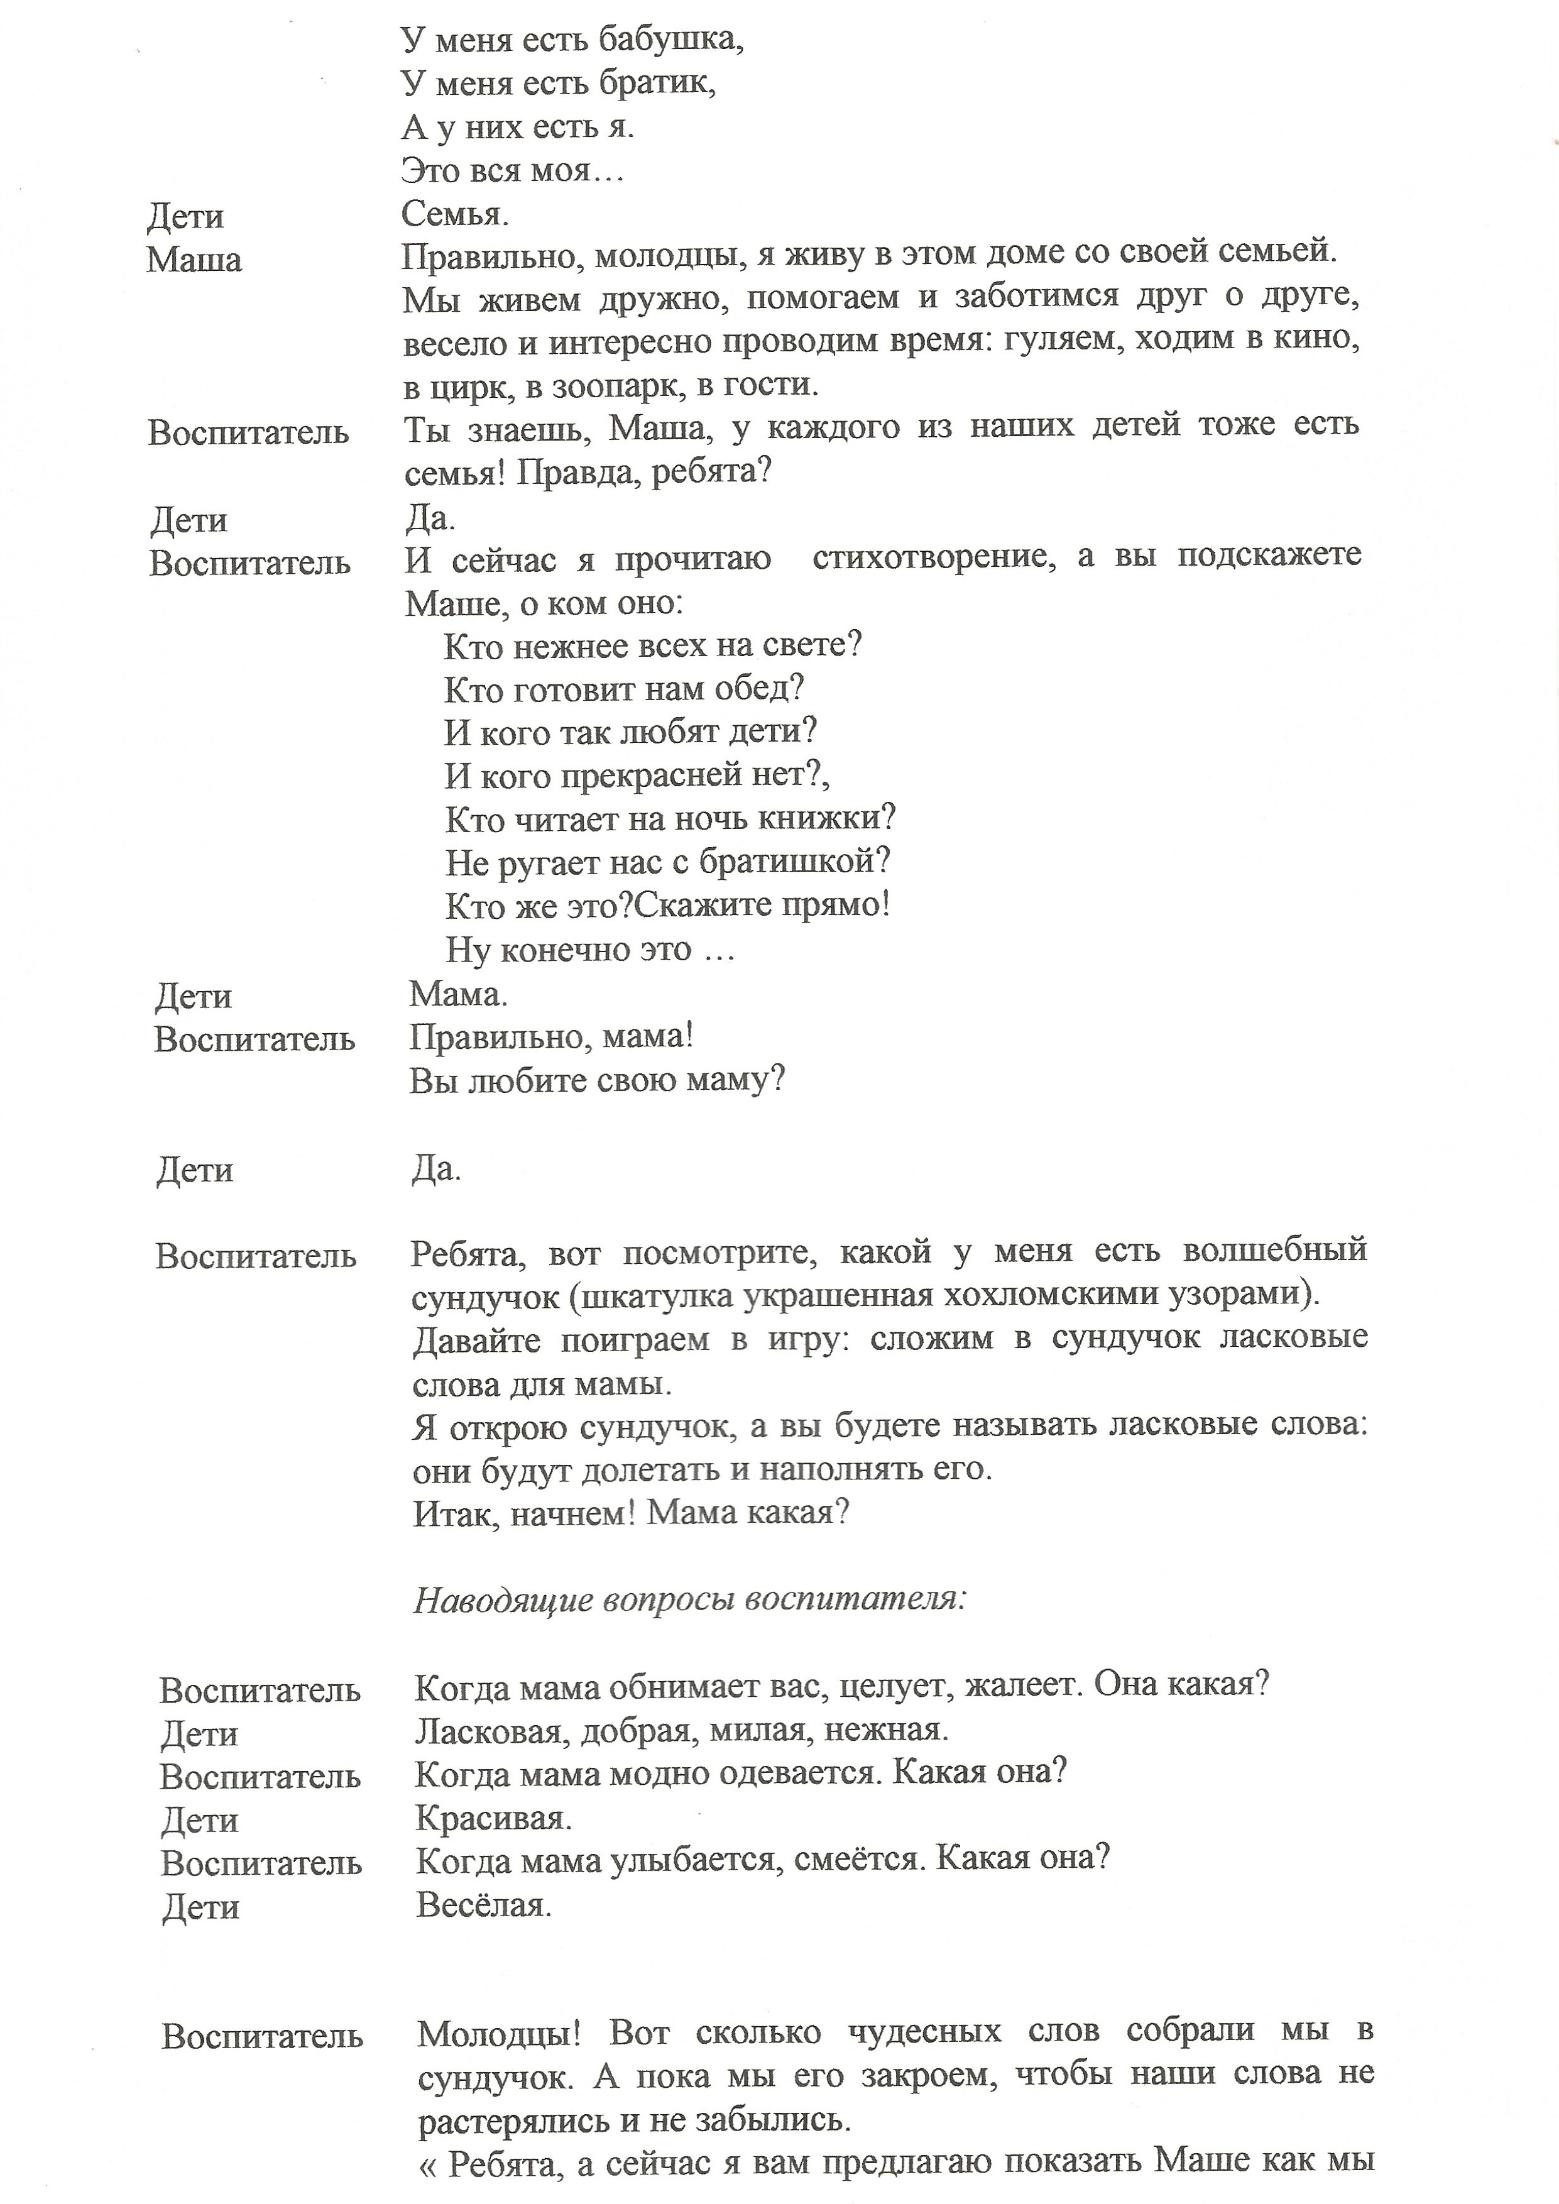 C:\Users\мардановы\Documents\Scan8.tif